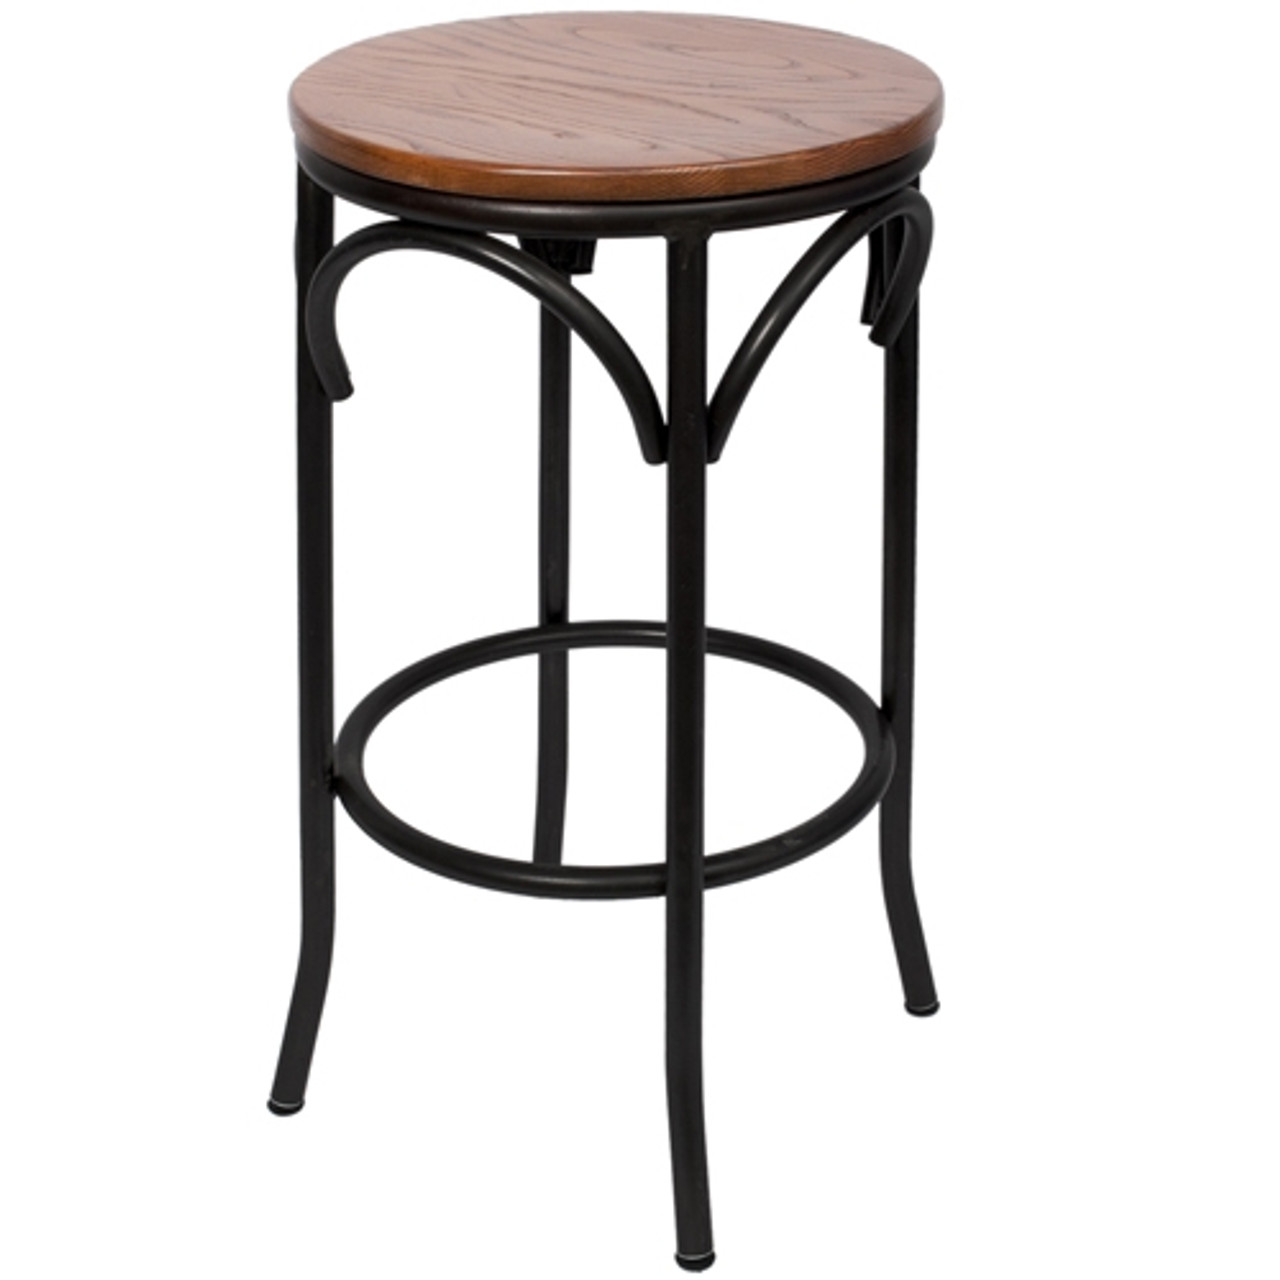 Industrial Backless Bar Stools Bfm Seating Henry Industrial Furniture